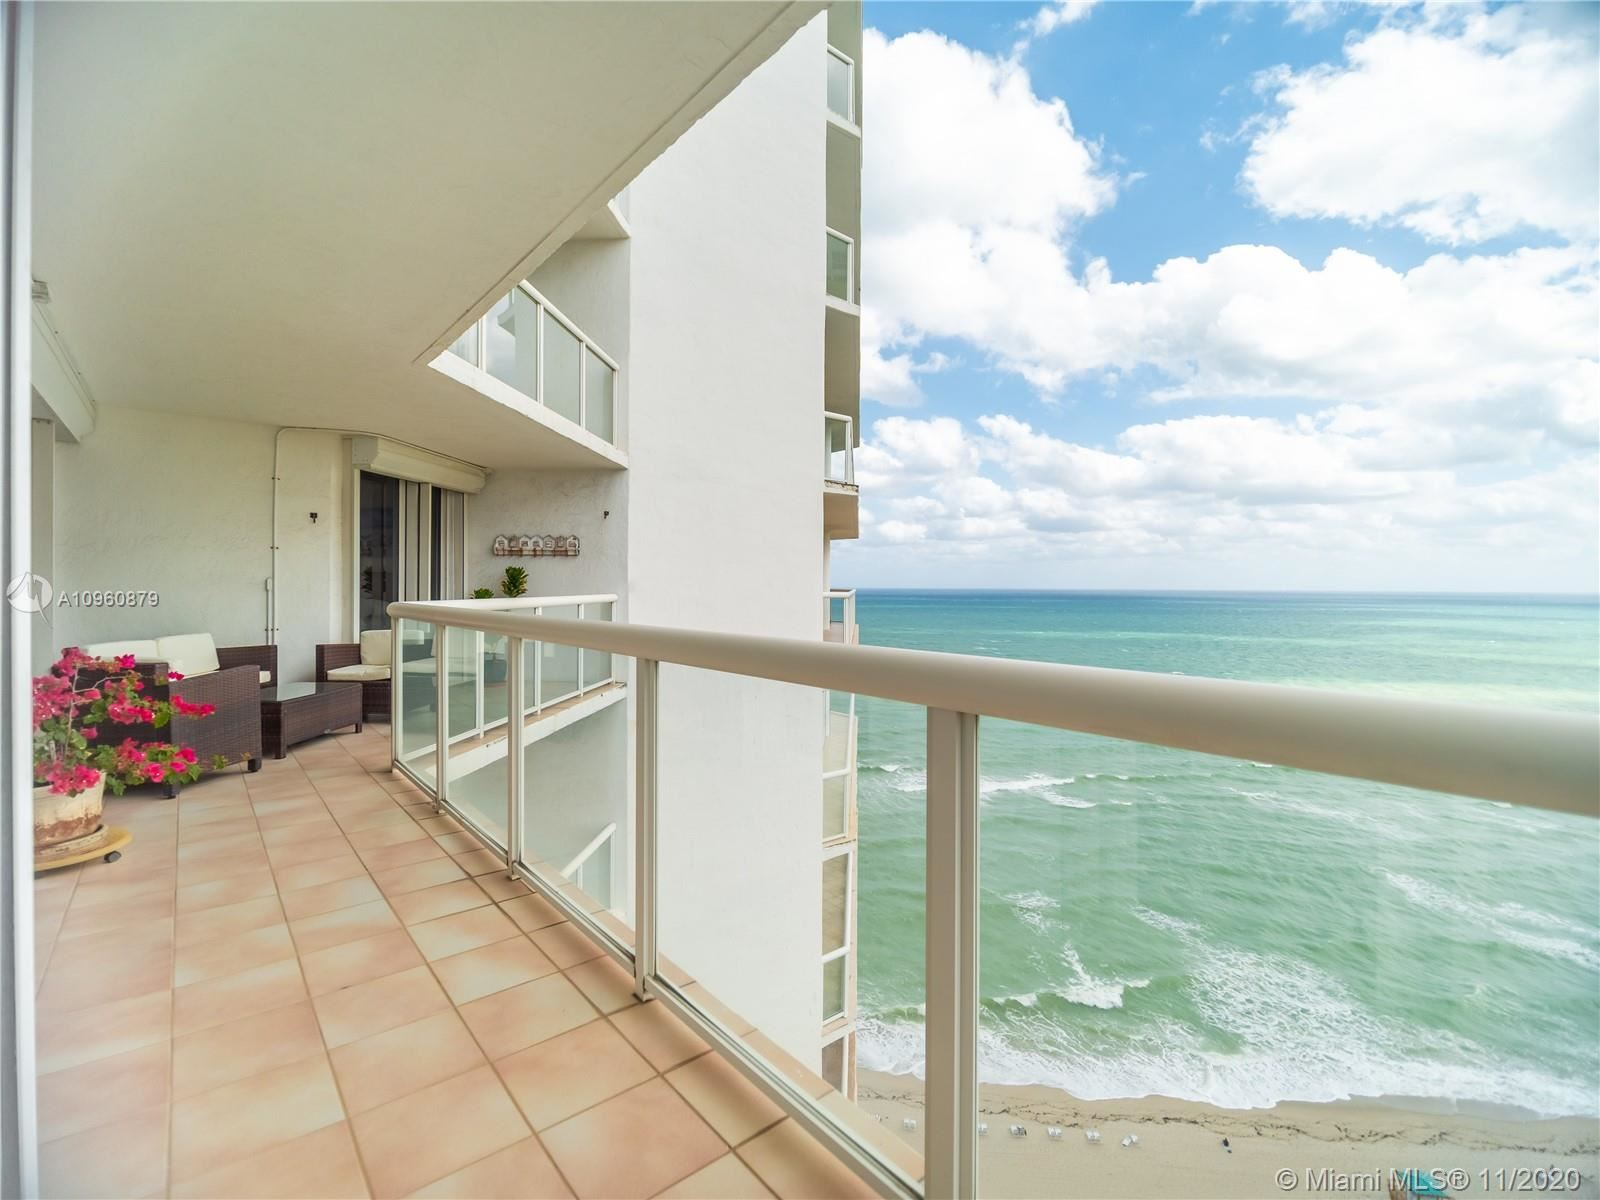 16425 Collins Ave #2312, Sunny Isles, FL 33160 - #: A10960879